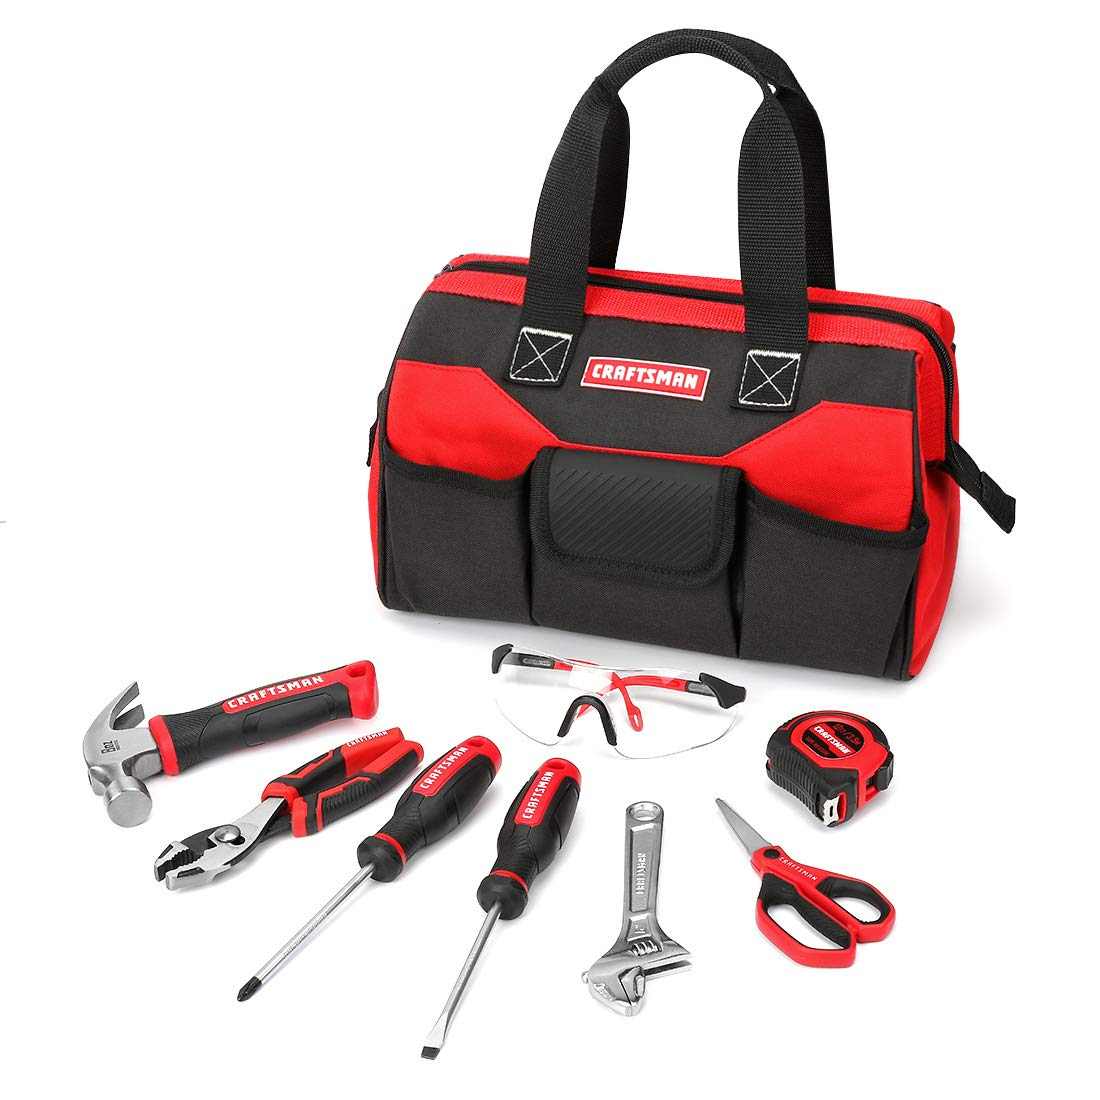 Craftsman CMXTYAG65549 8Piece Kids Junior Tool Set with Tool Bag, Real Tools & Accessories For Boys & Girls, Age 8+